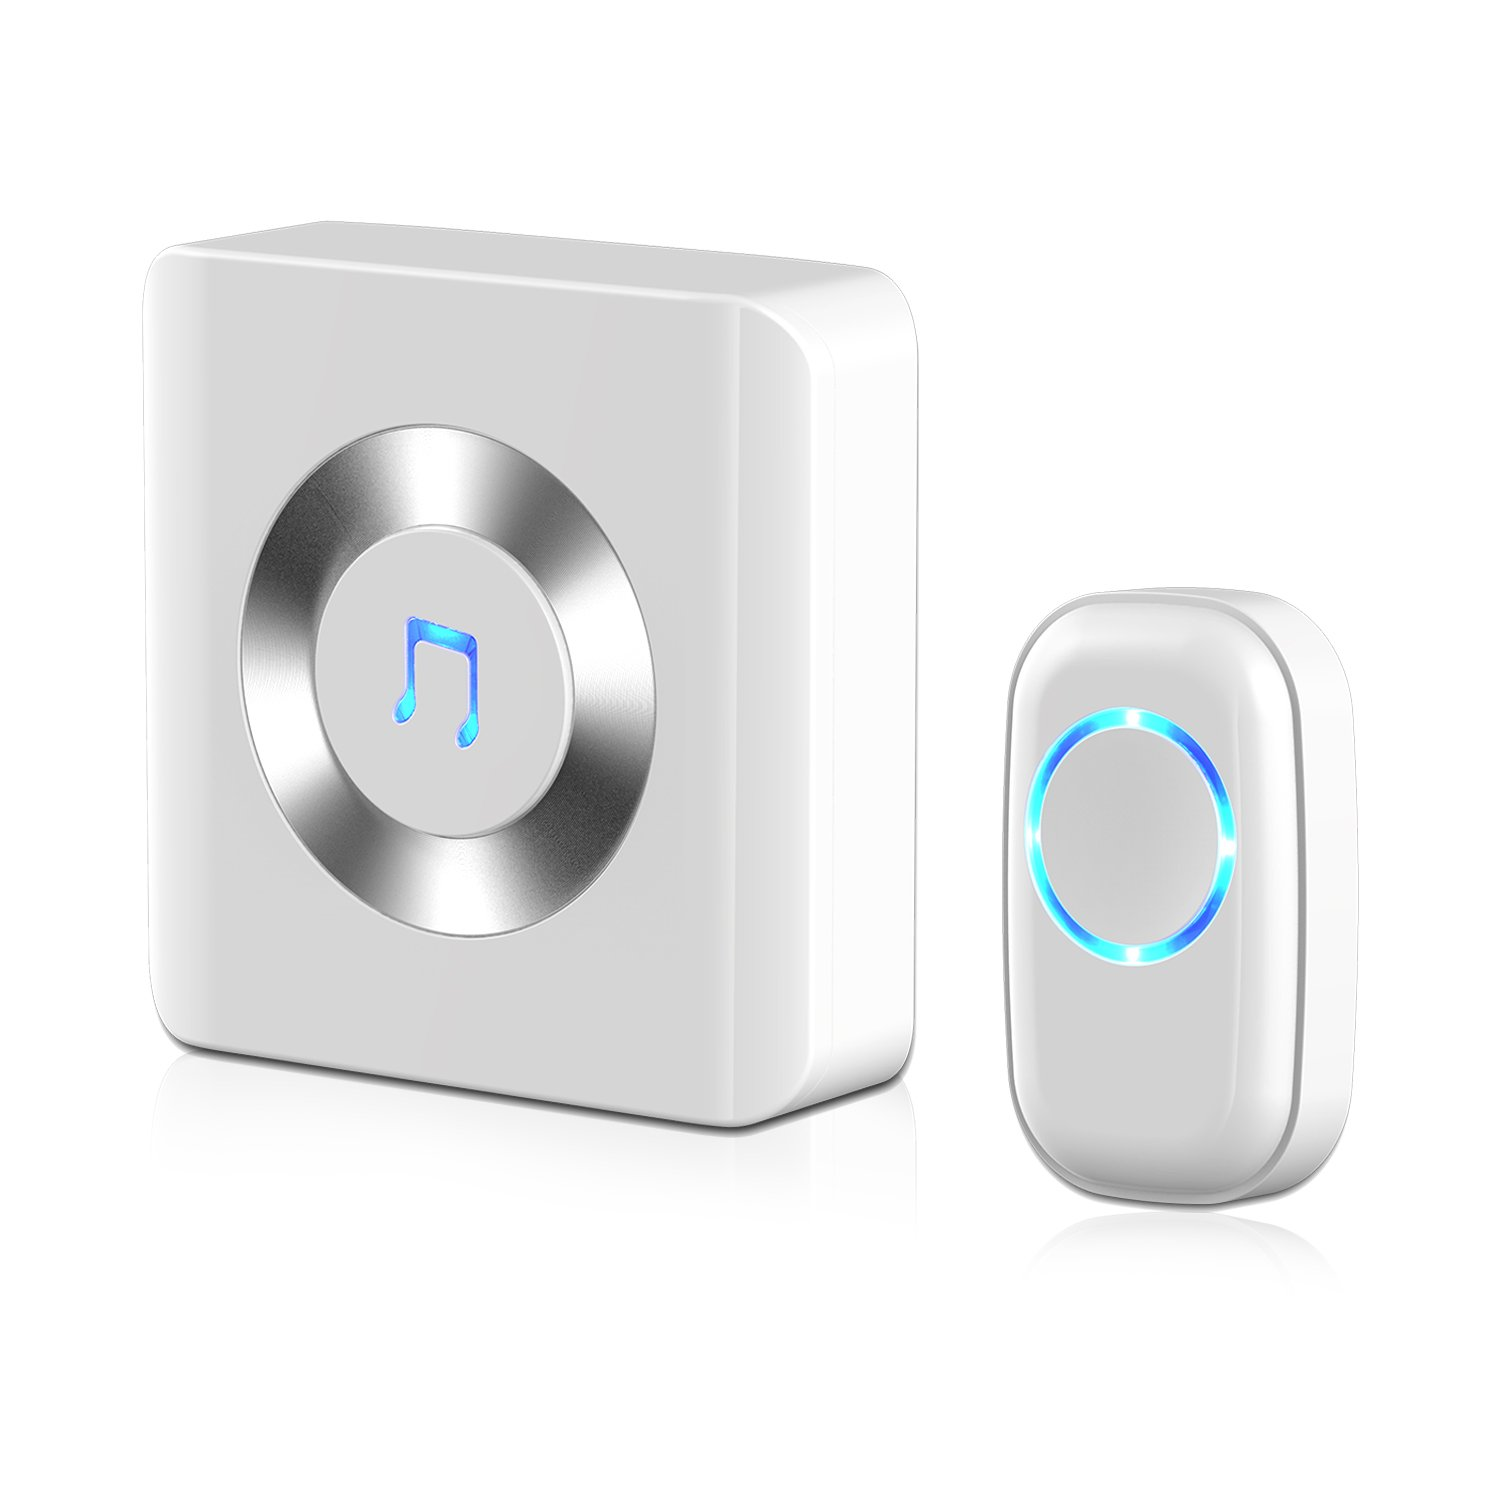 wireless doorbell jetech portable wireless doorbell chime plugin push button with led indicator